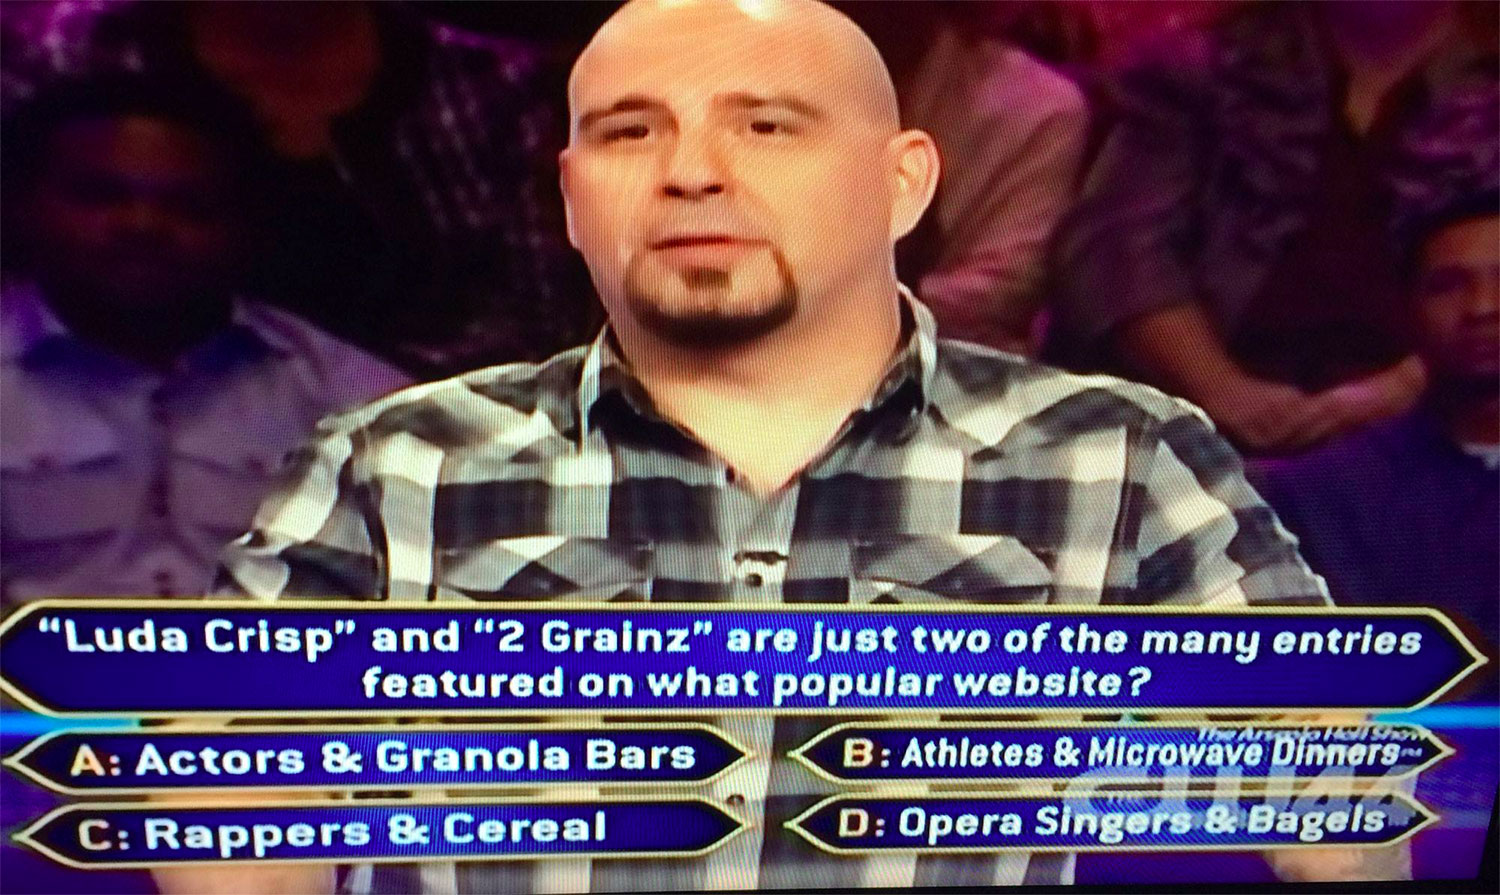 Rappers and Cereal on Who Wants to be Millionaire